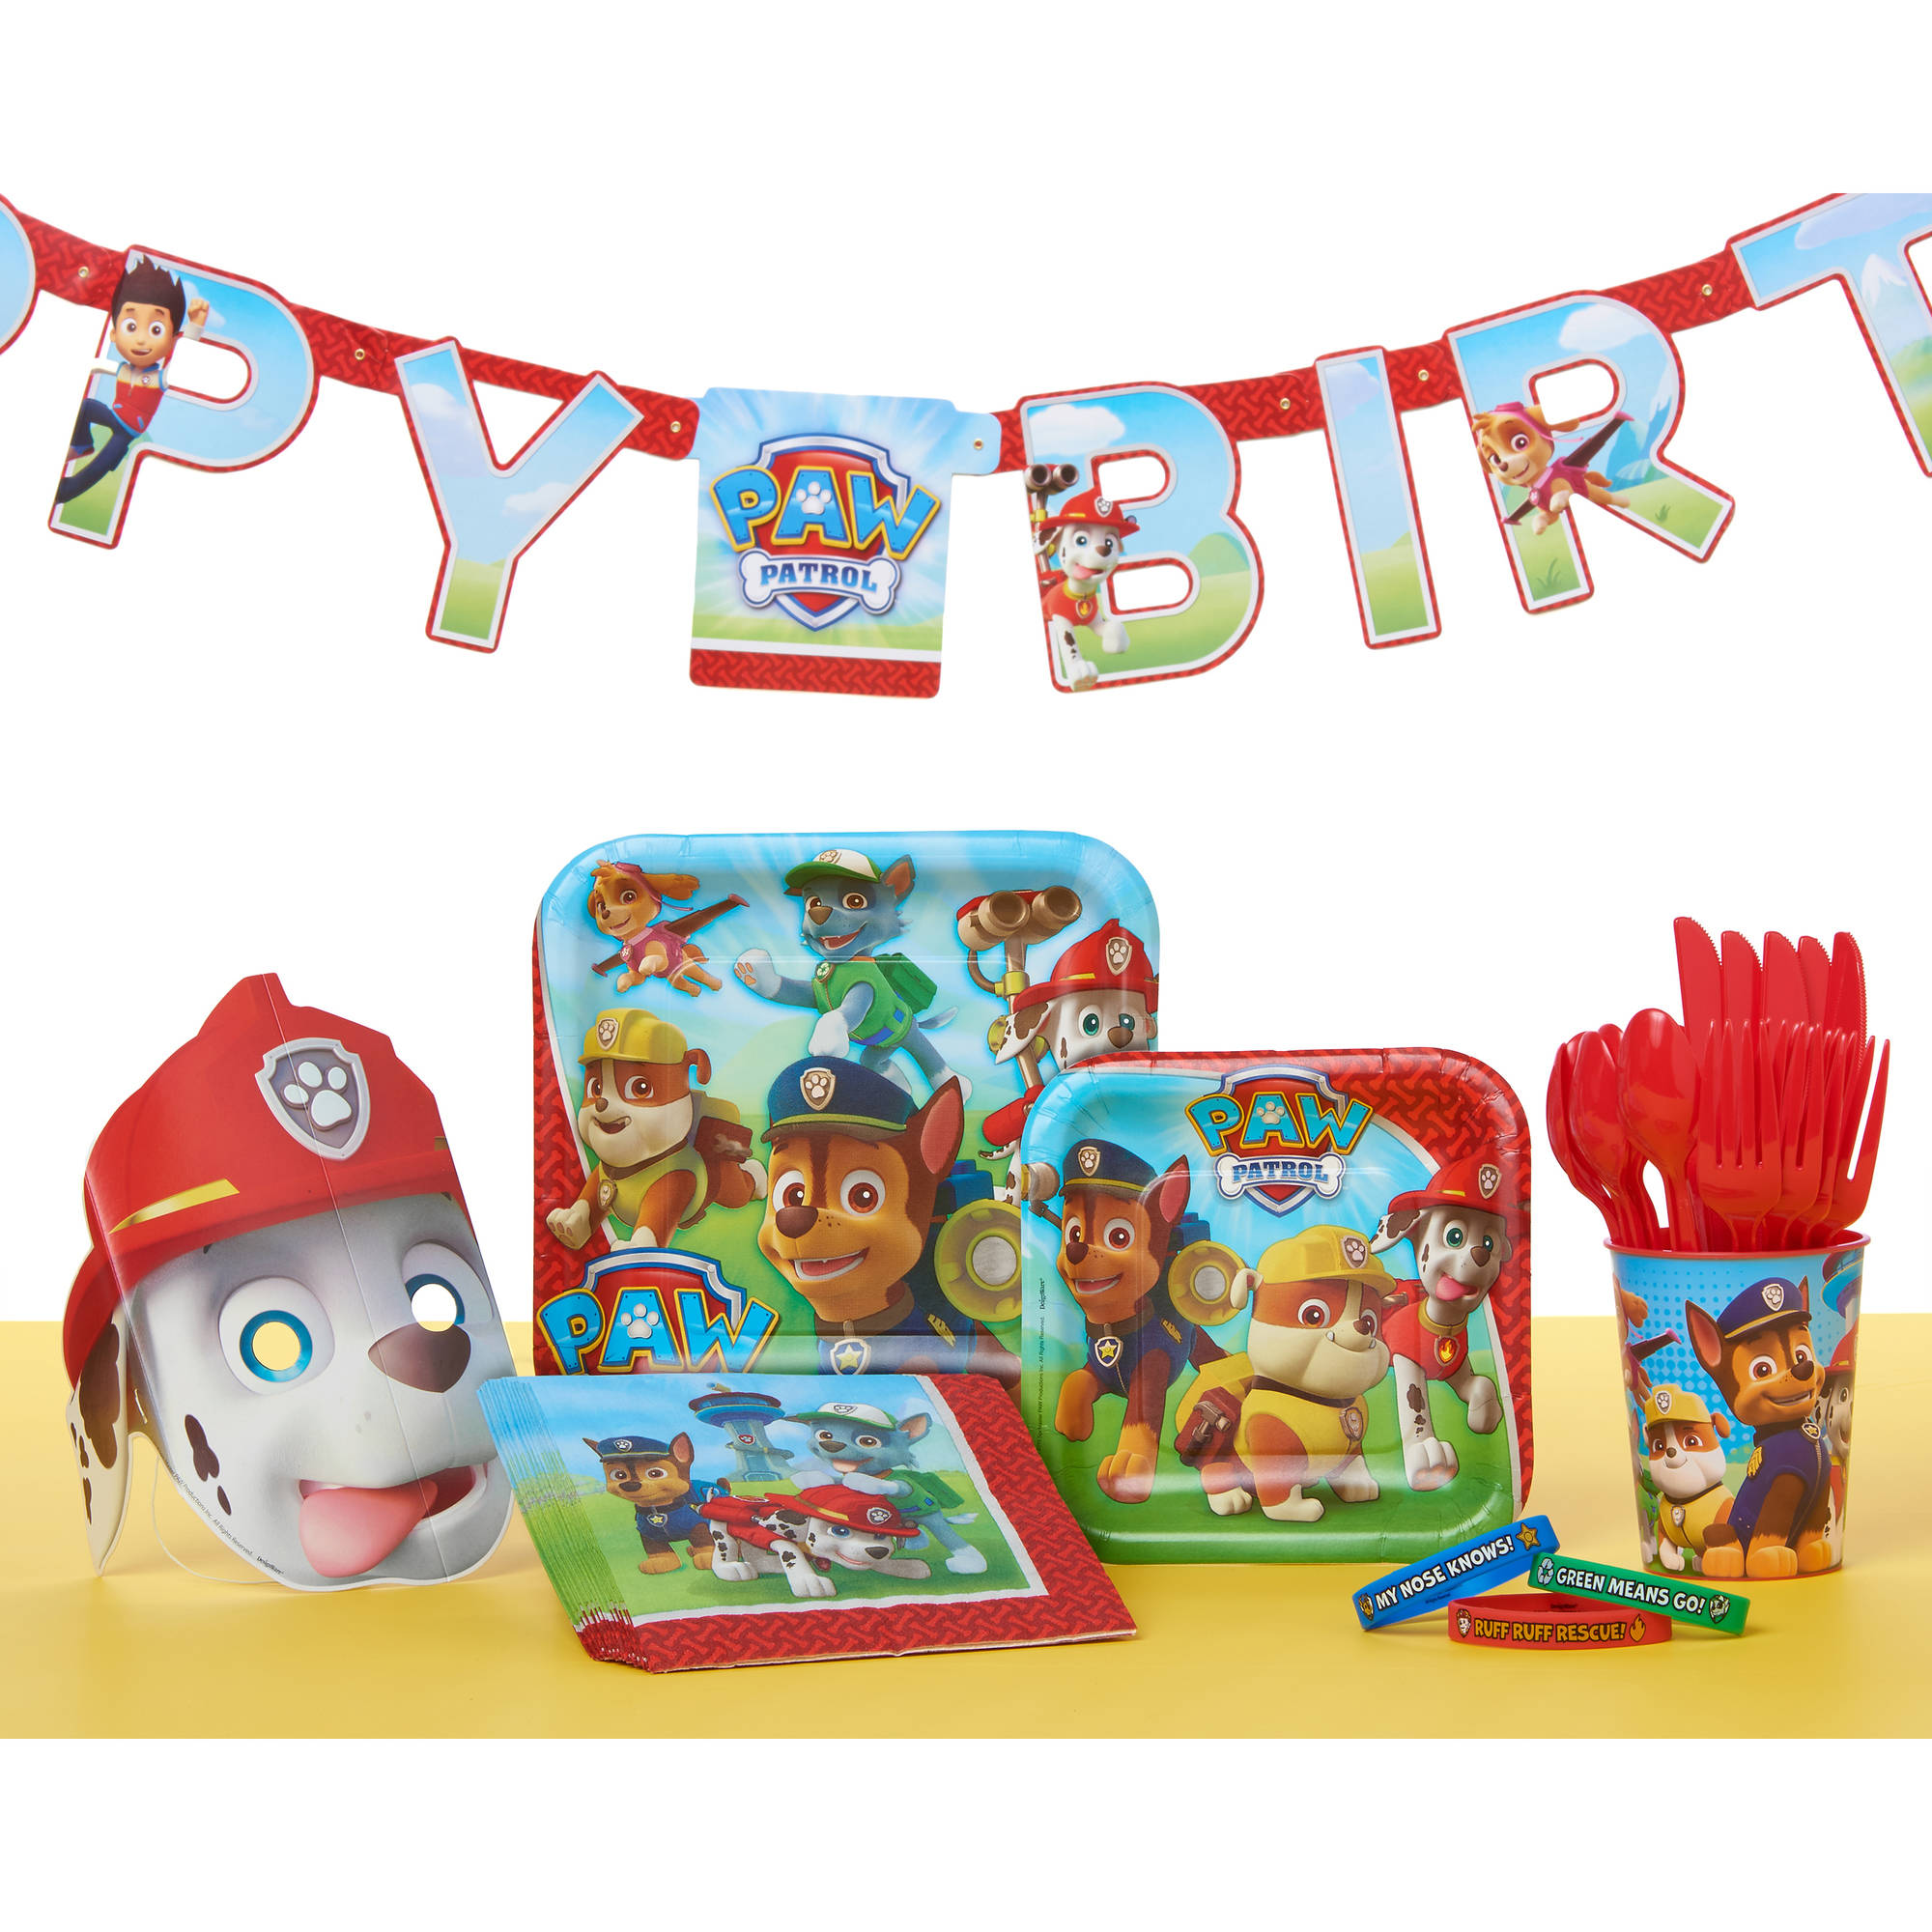 Paw Patrol Birthday Party Decoration Banner 759 Ft Walmart